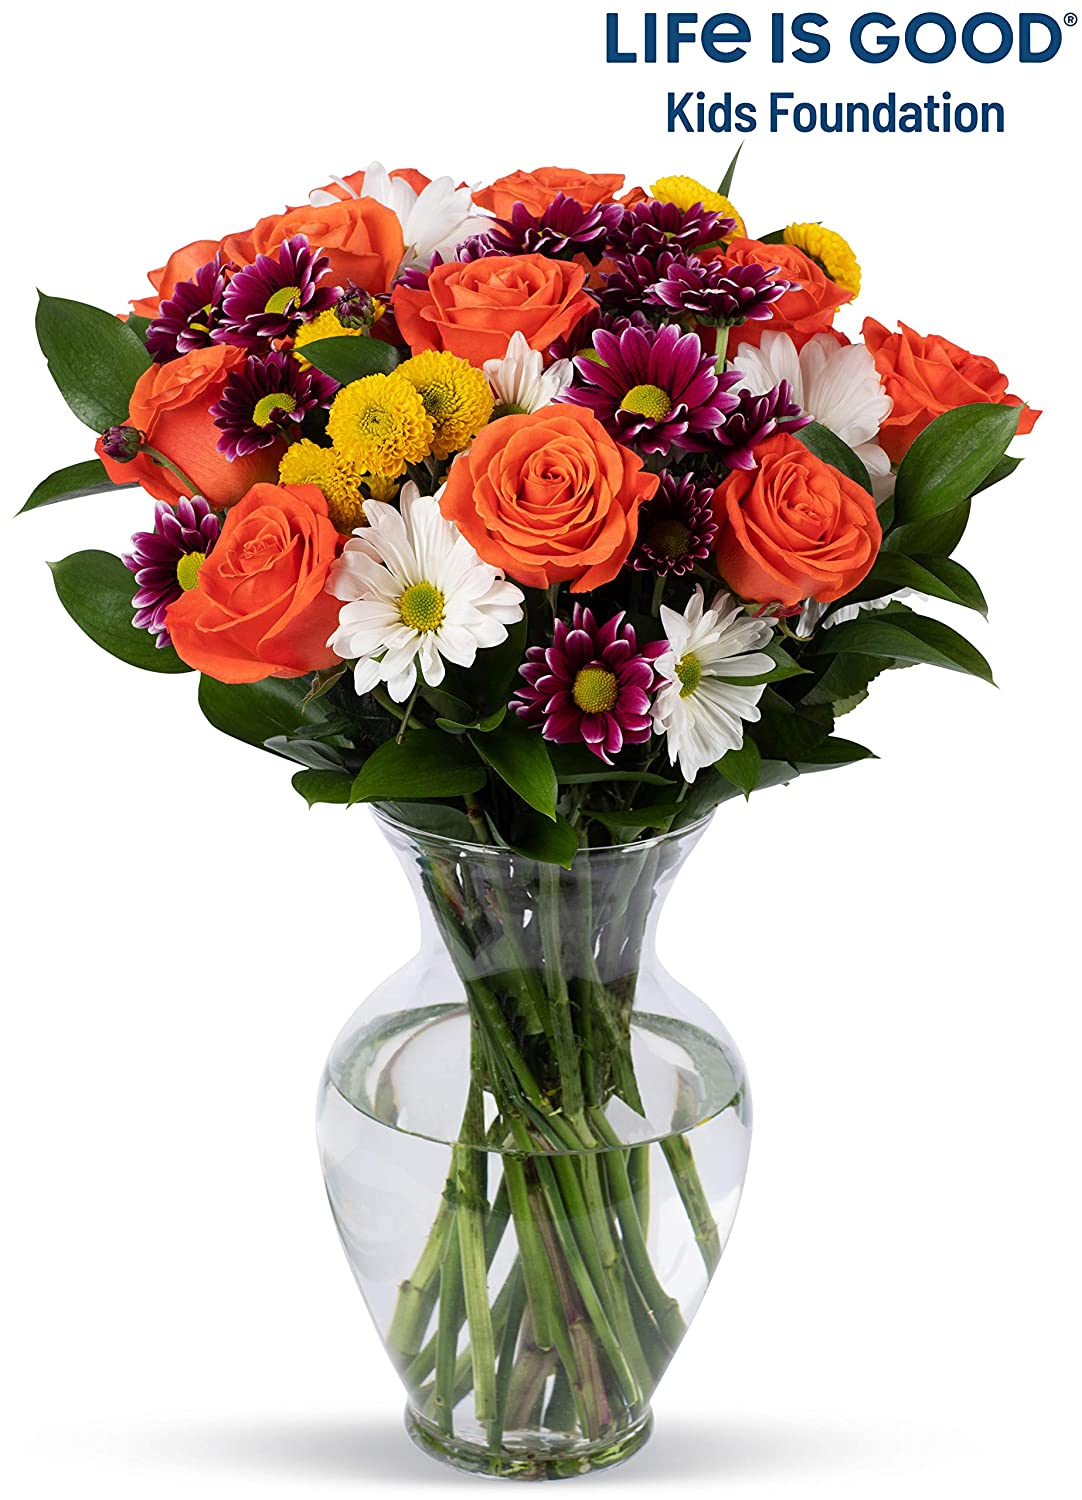 264 & Benchmark Bouquets Life is Good Flowers Orange With Vase (Fresh Cut Flowers)